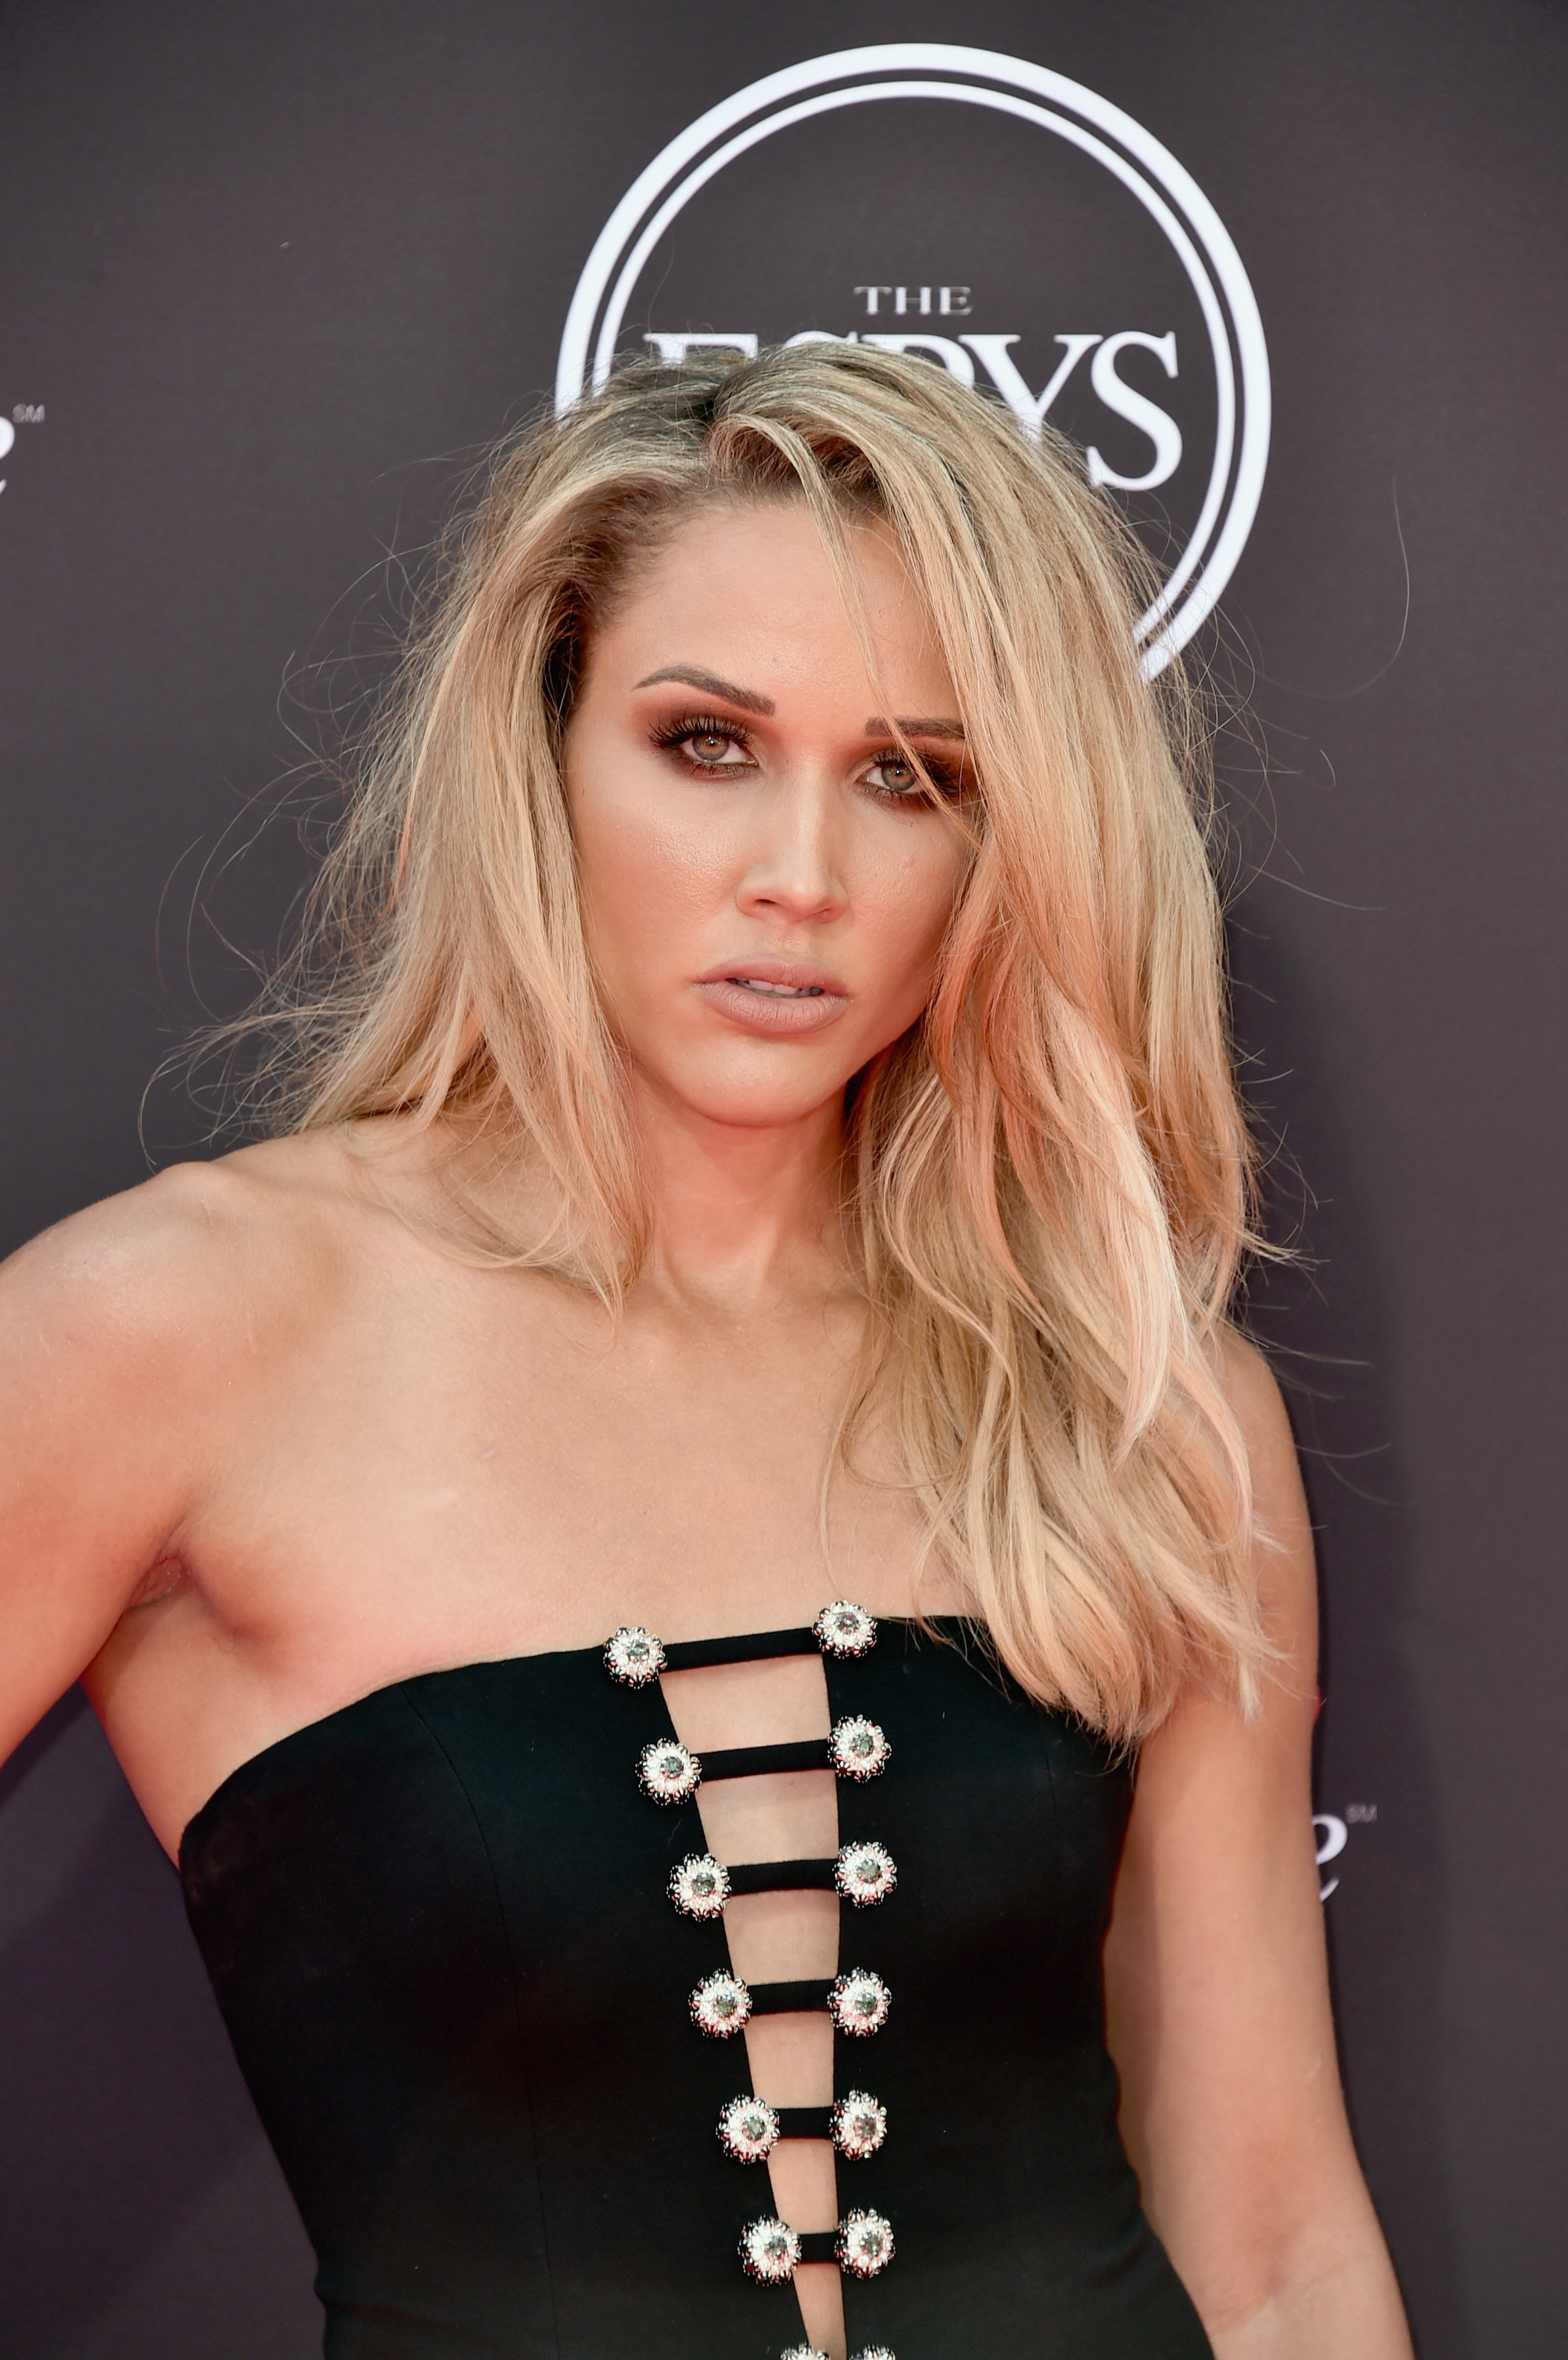 Lolo Jones attends The 2018 ESPYS at Microsoft Theater on July 18, 2018, in Los Angeles, California | Photo: Getty Images